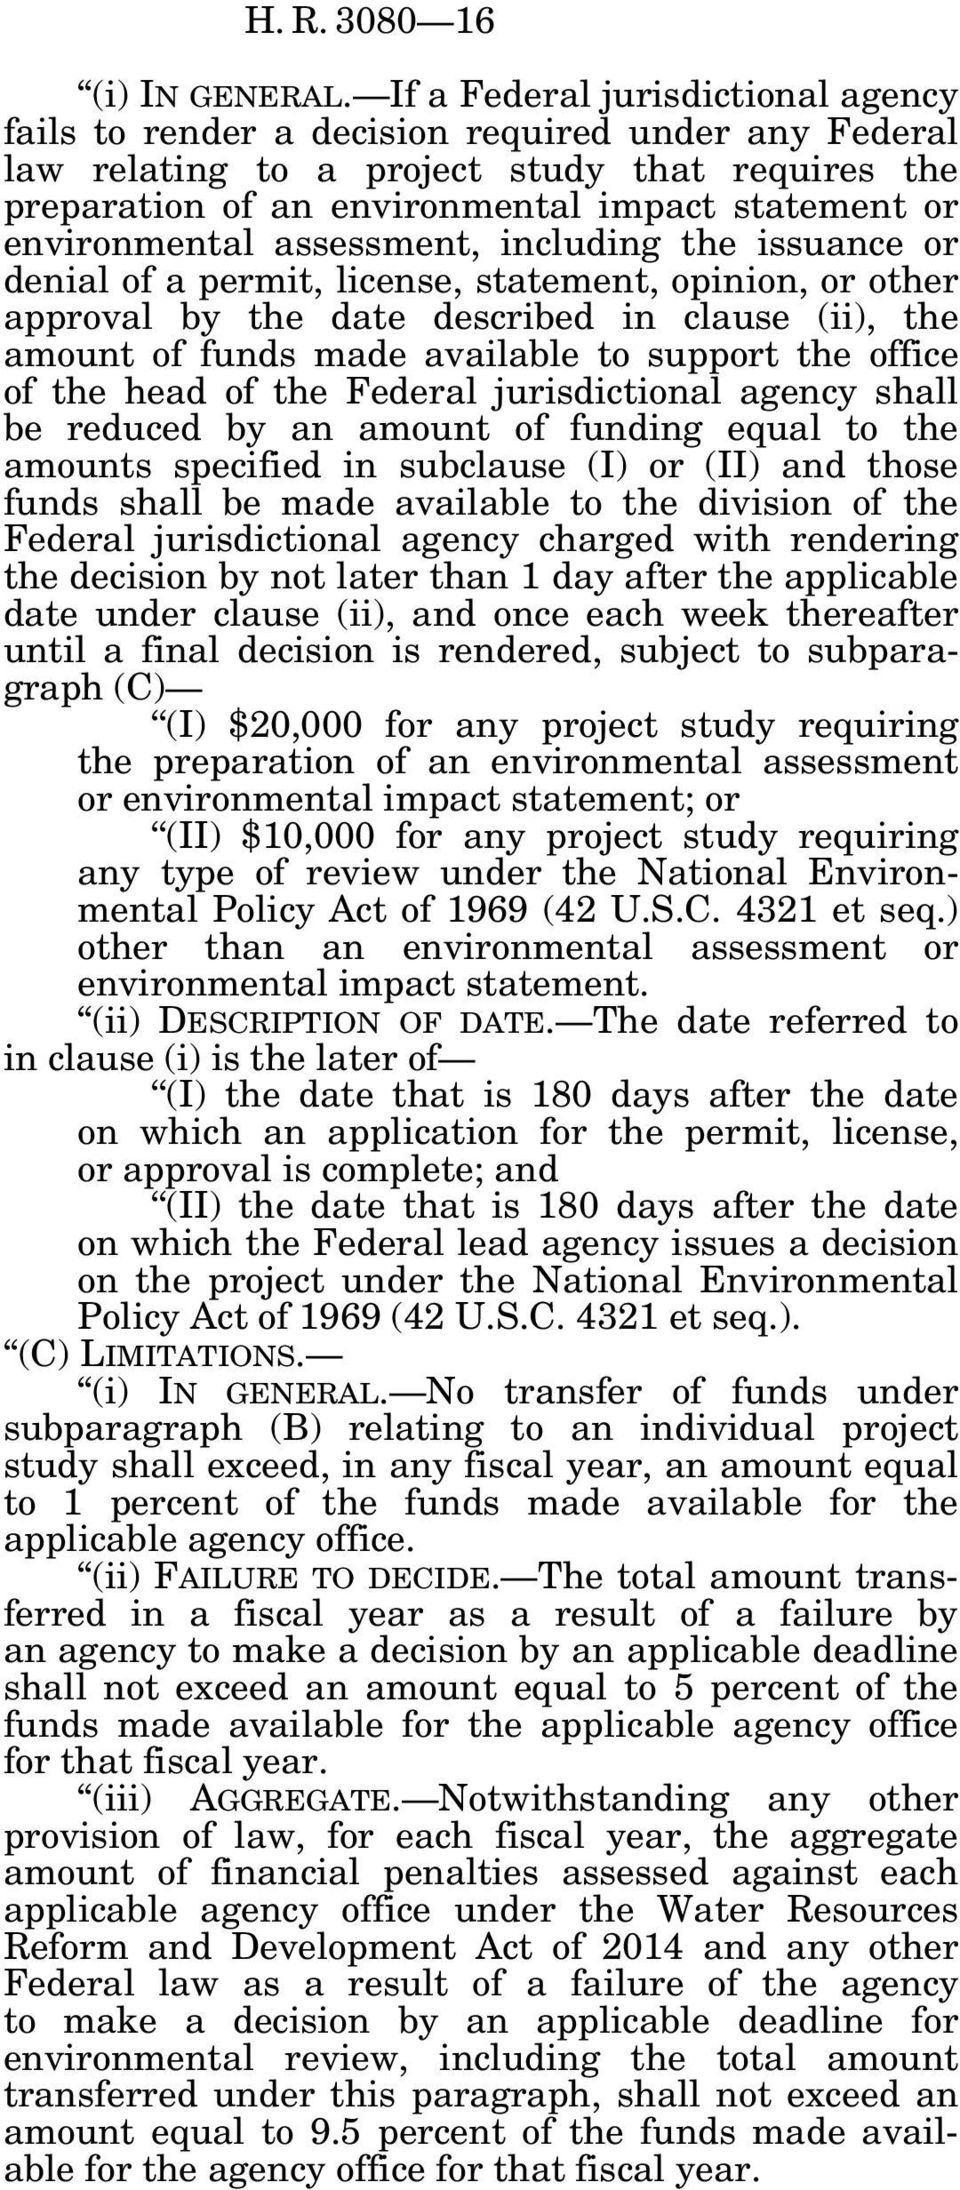 environmental assessment, including the issuance or denial of a permit, license, statement, opinion, or other approval by the date described in clause (ii), the amount of funds made available to